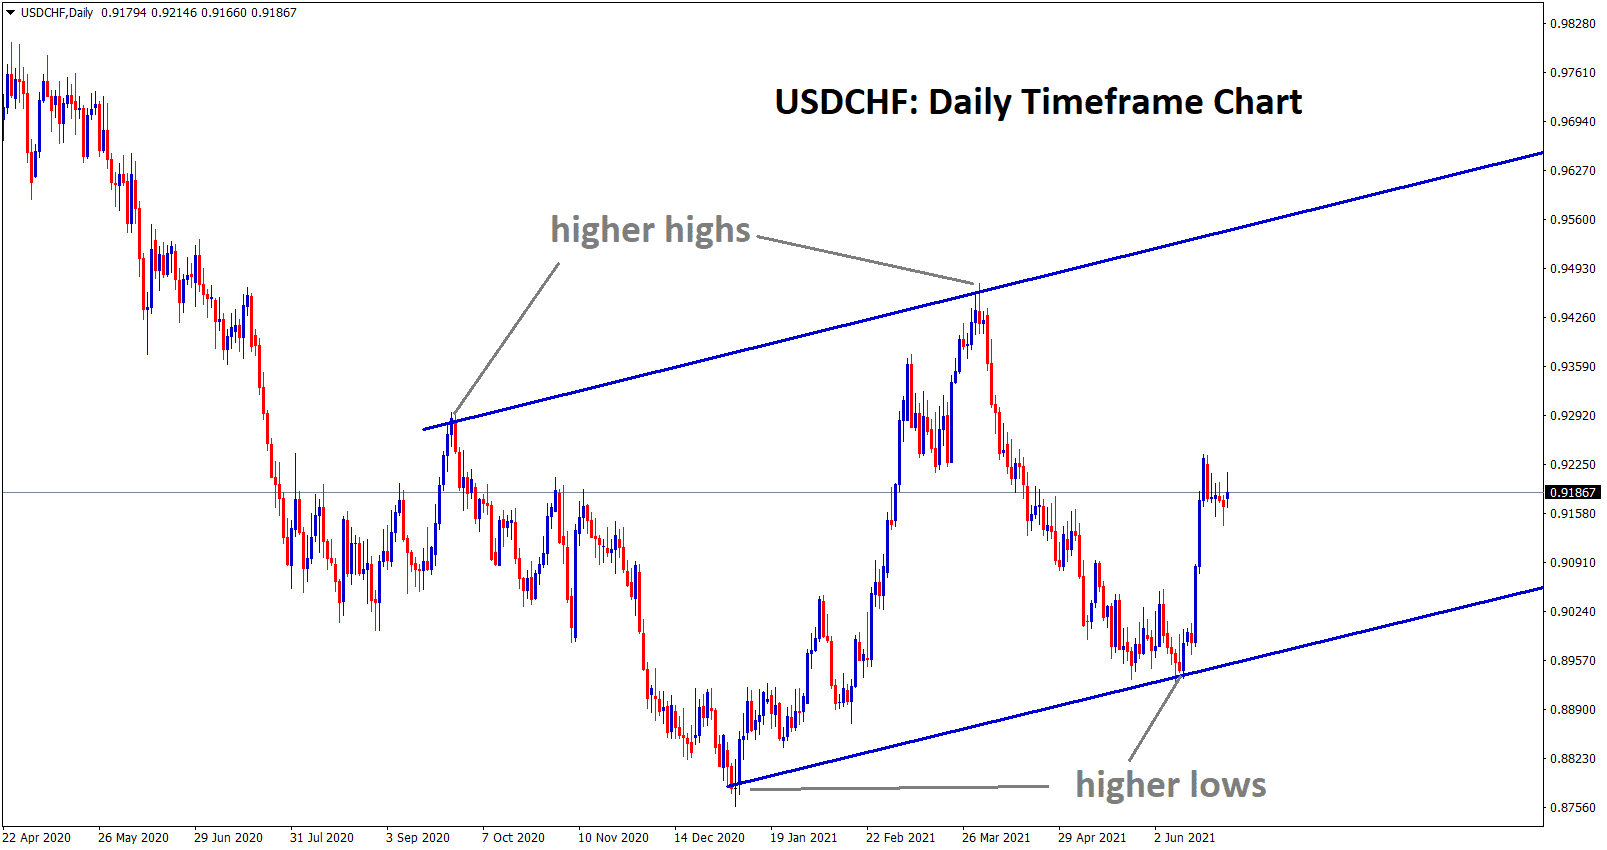 USDCHF is moving in an Uptrend range